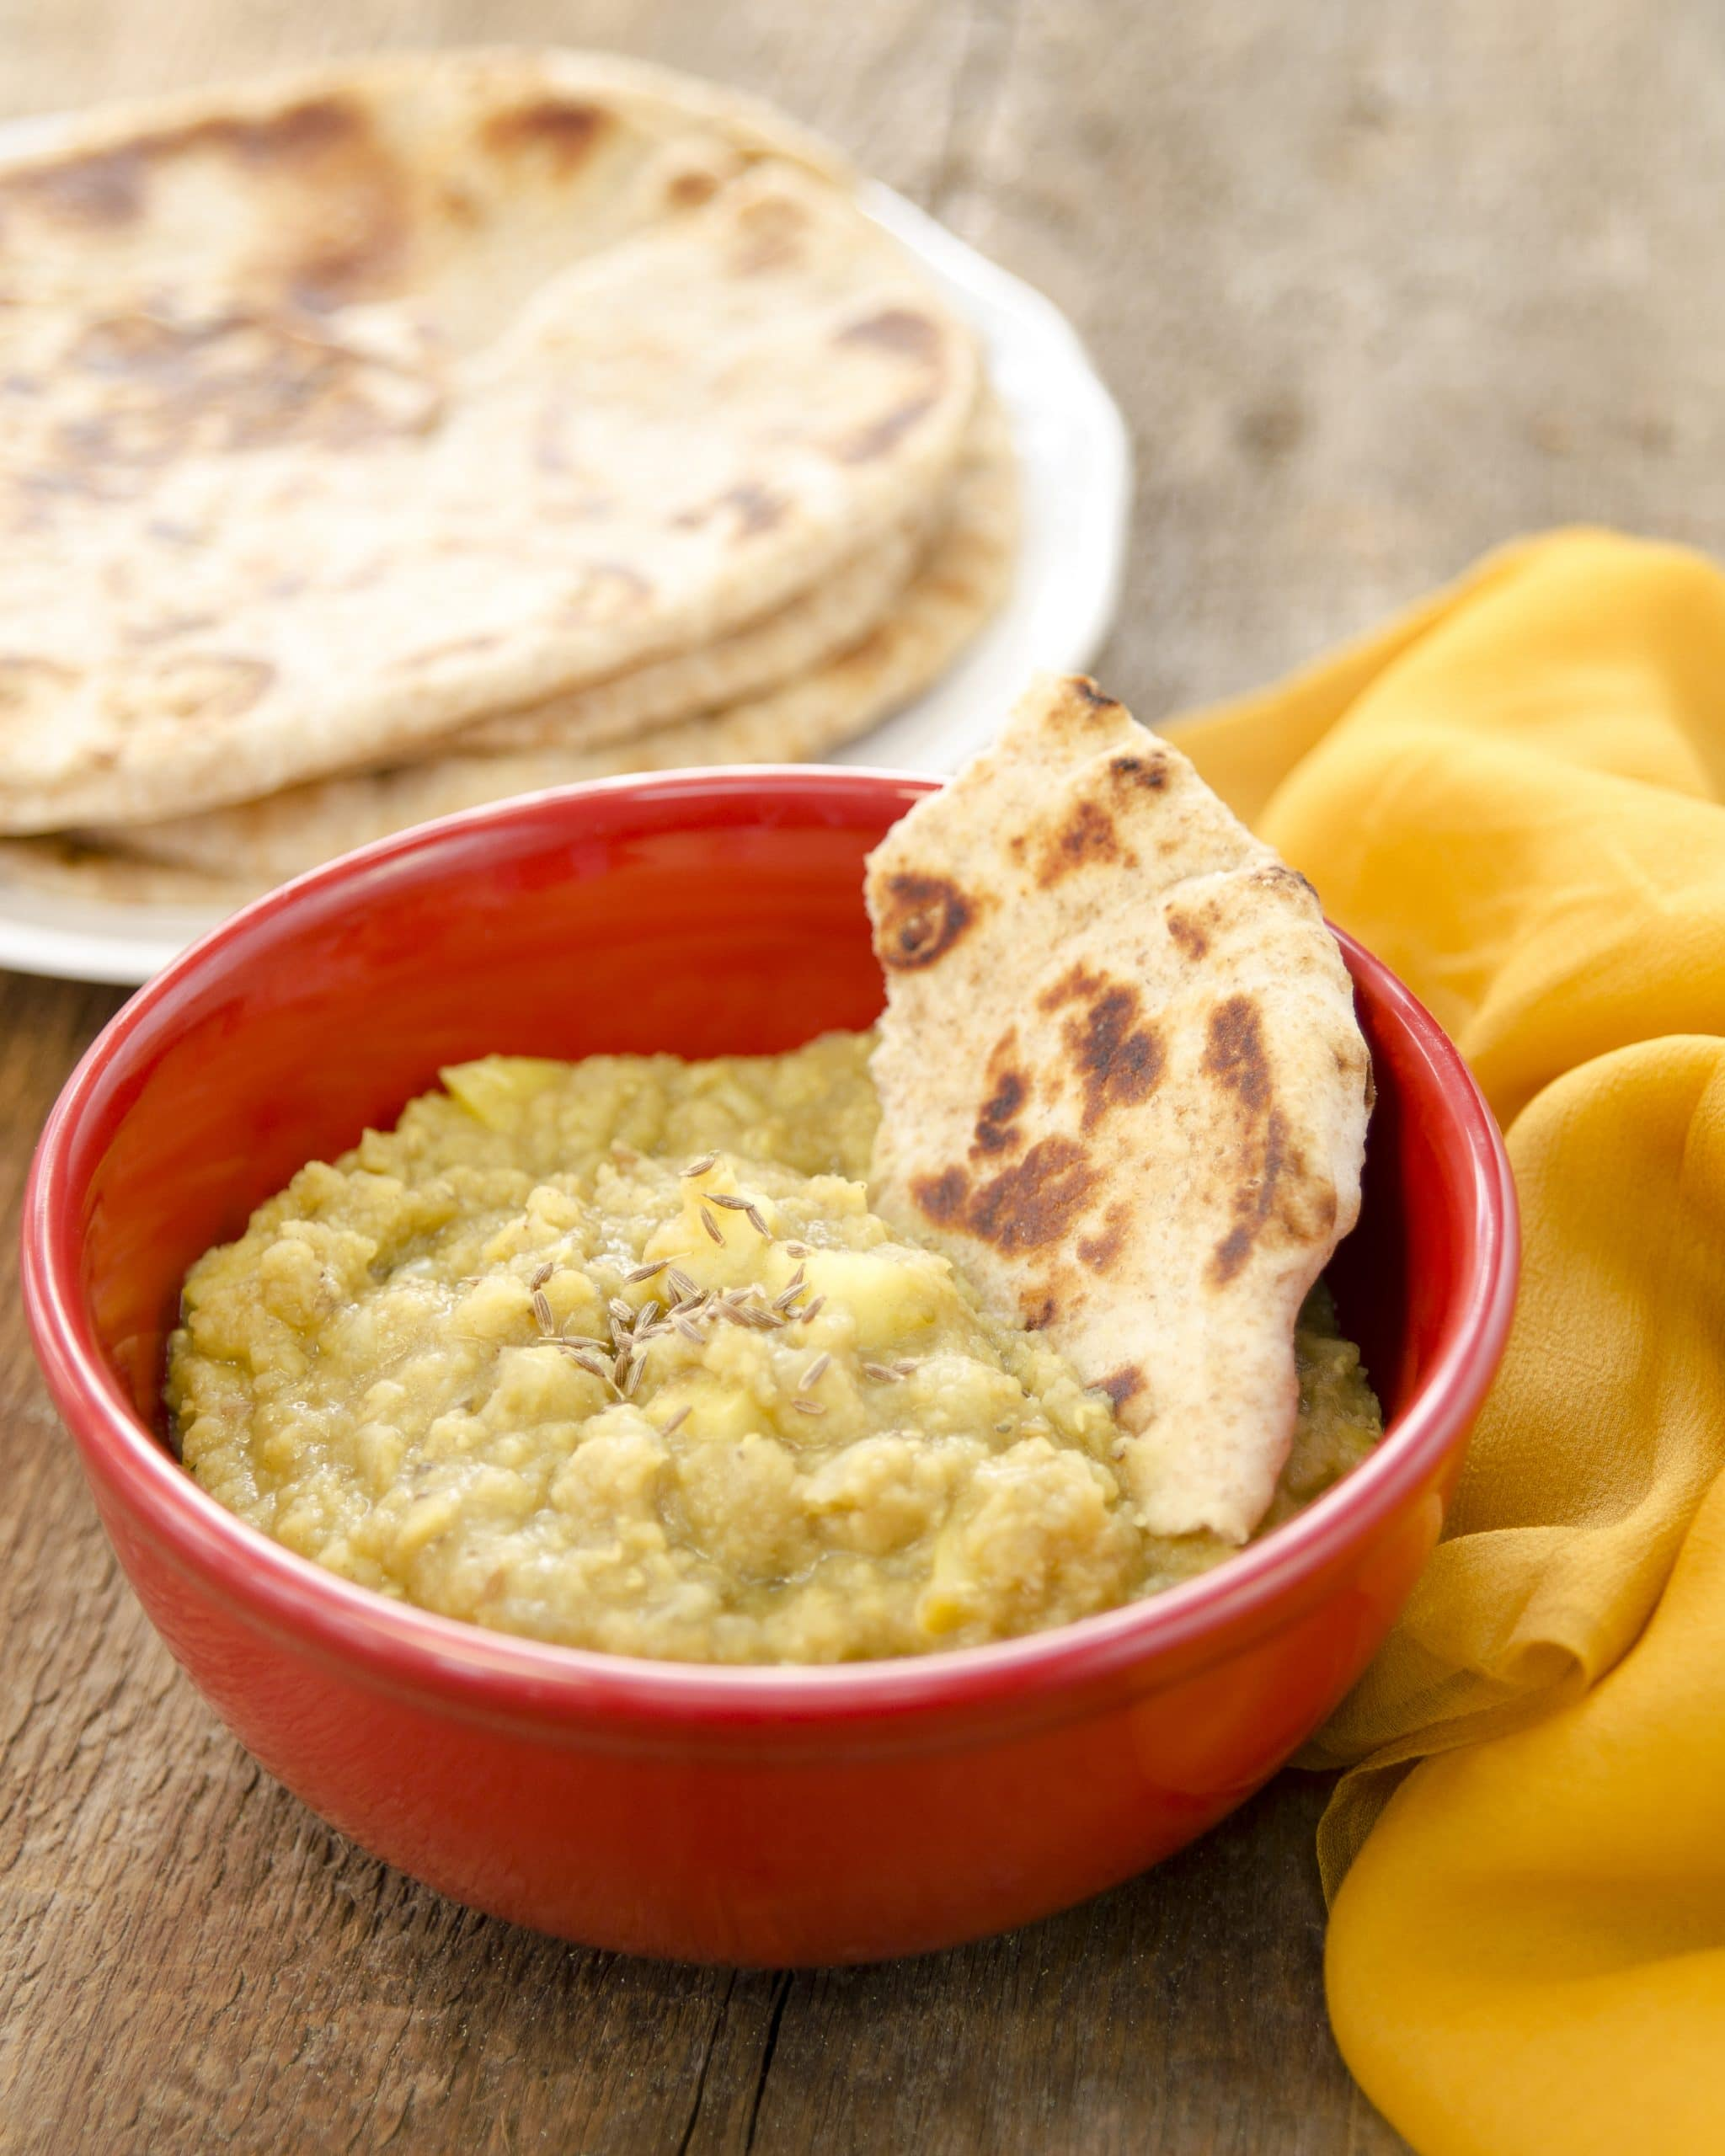 Apple Lentil Dal served in bowl with roti bread on the side.